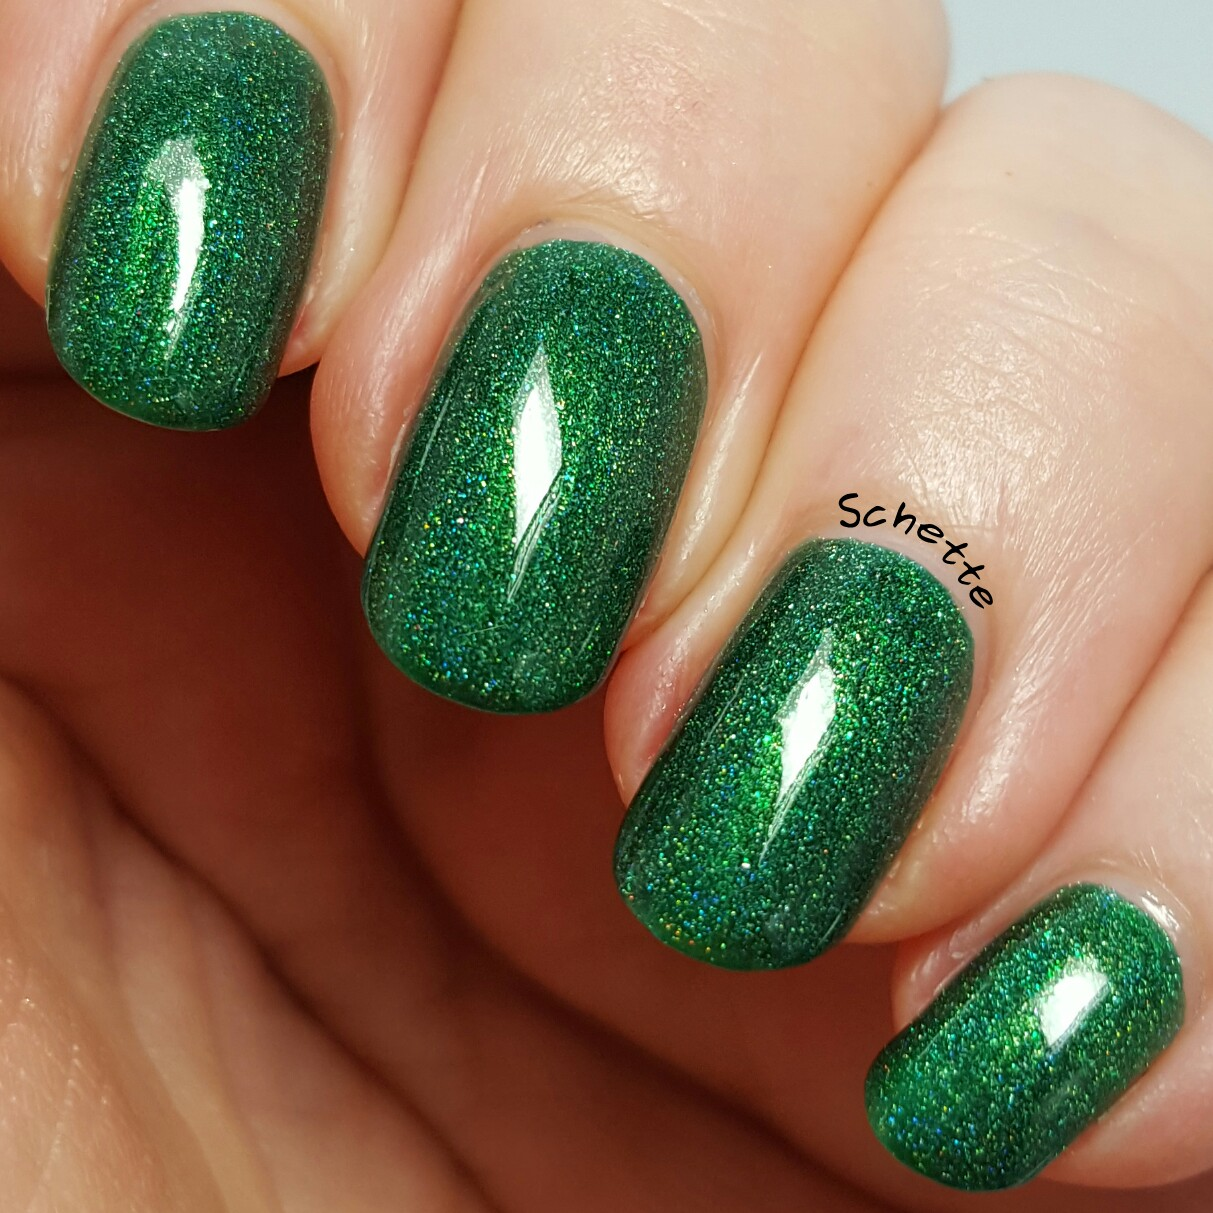 ILNP - A fresh evergreen